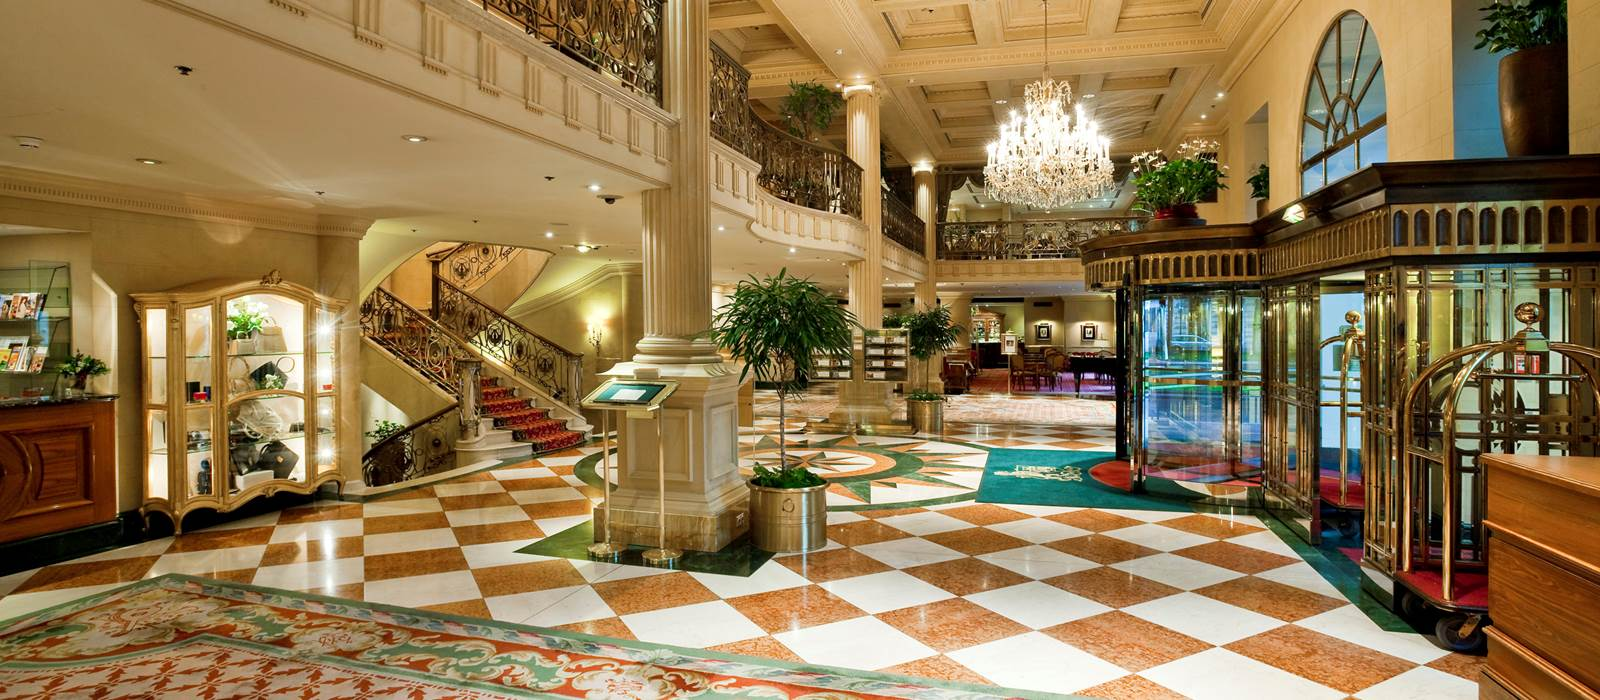 Grand Hotel Wien Jjw Hotels Amp Resorts